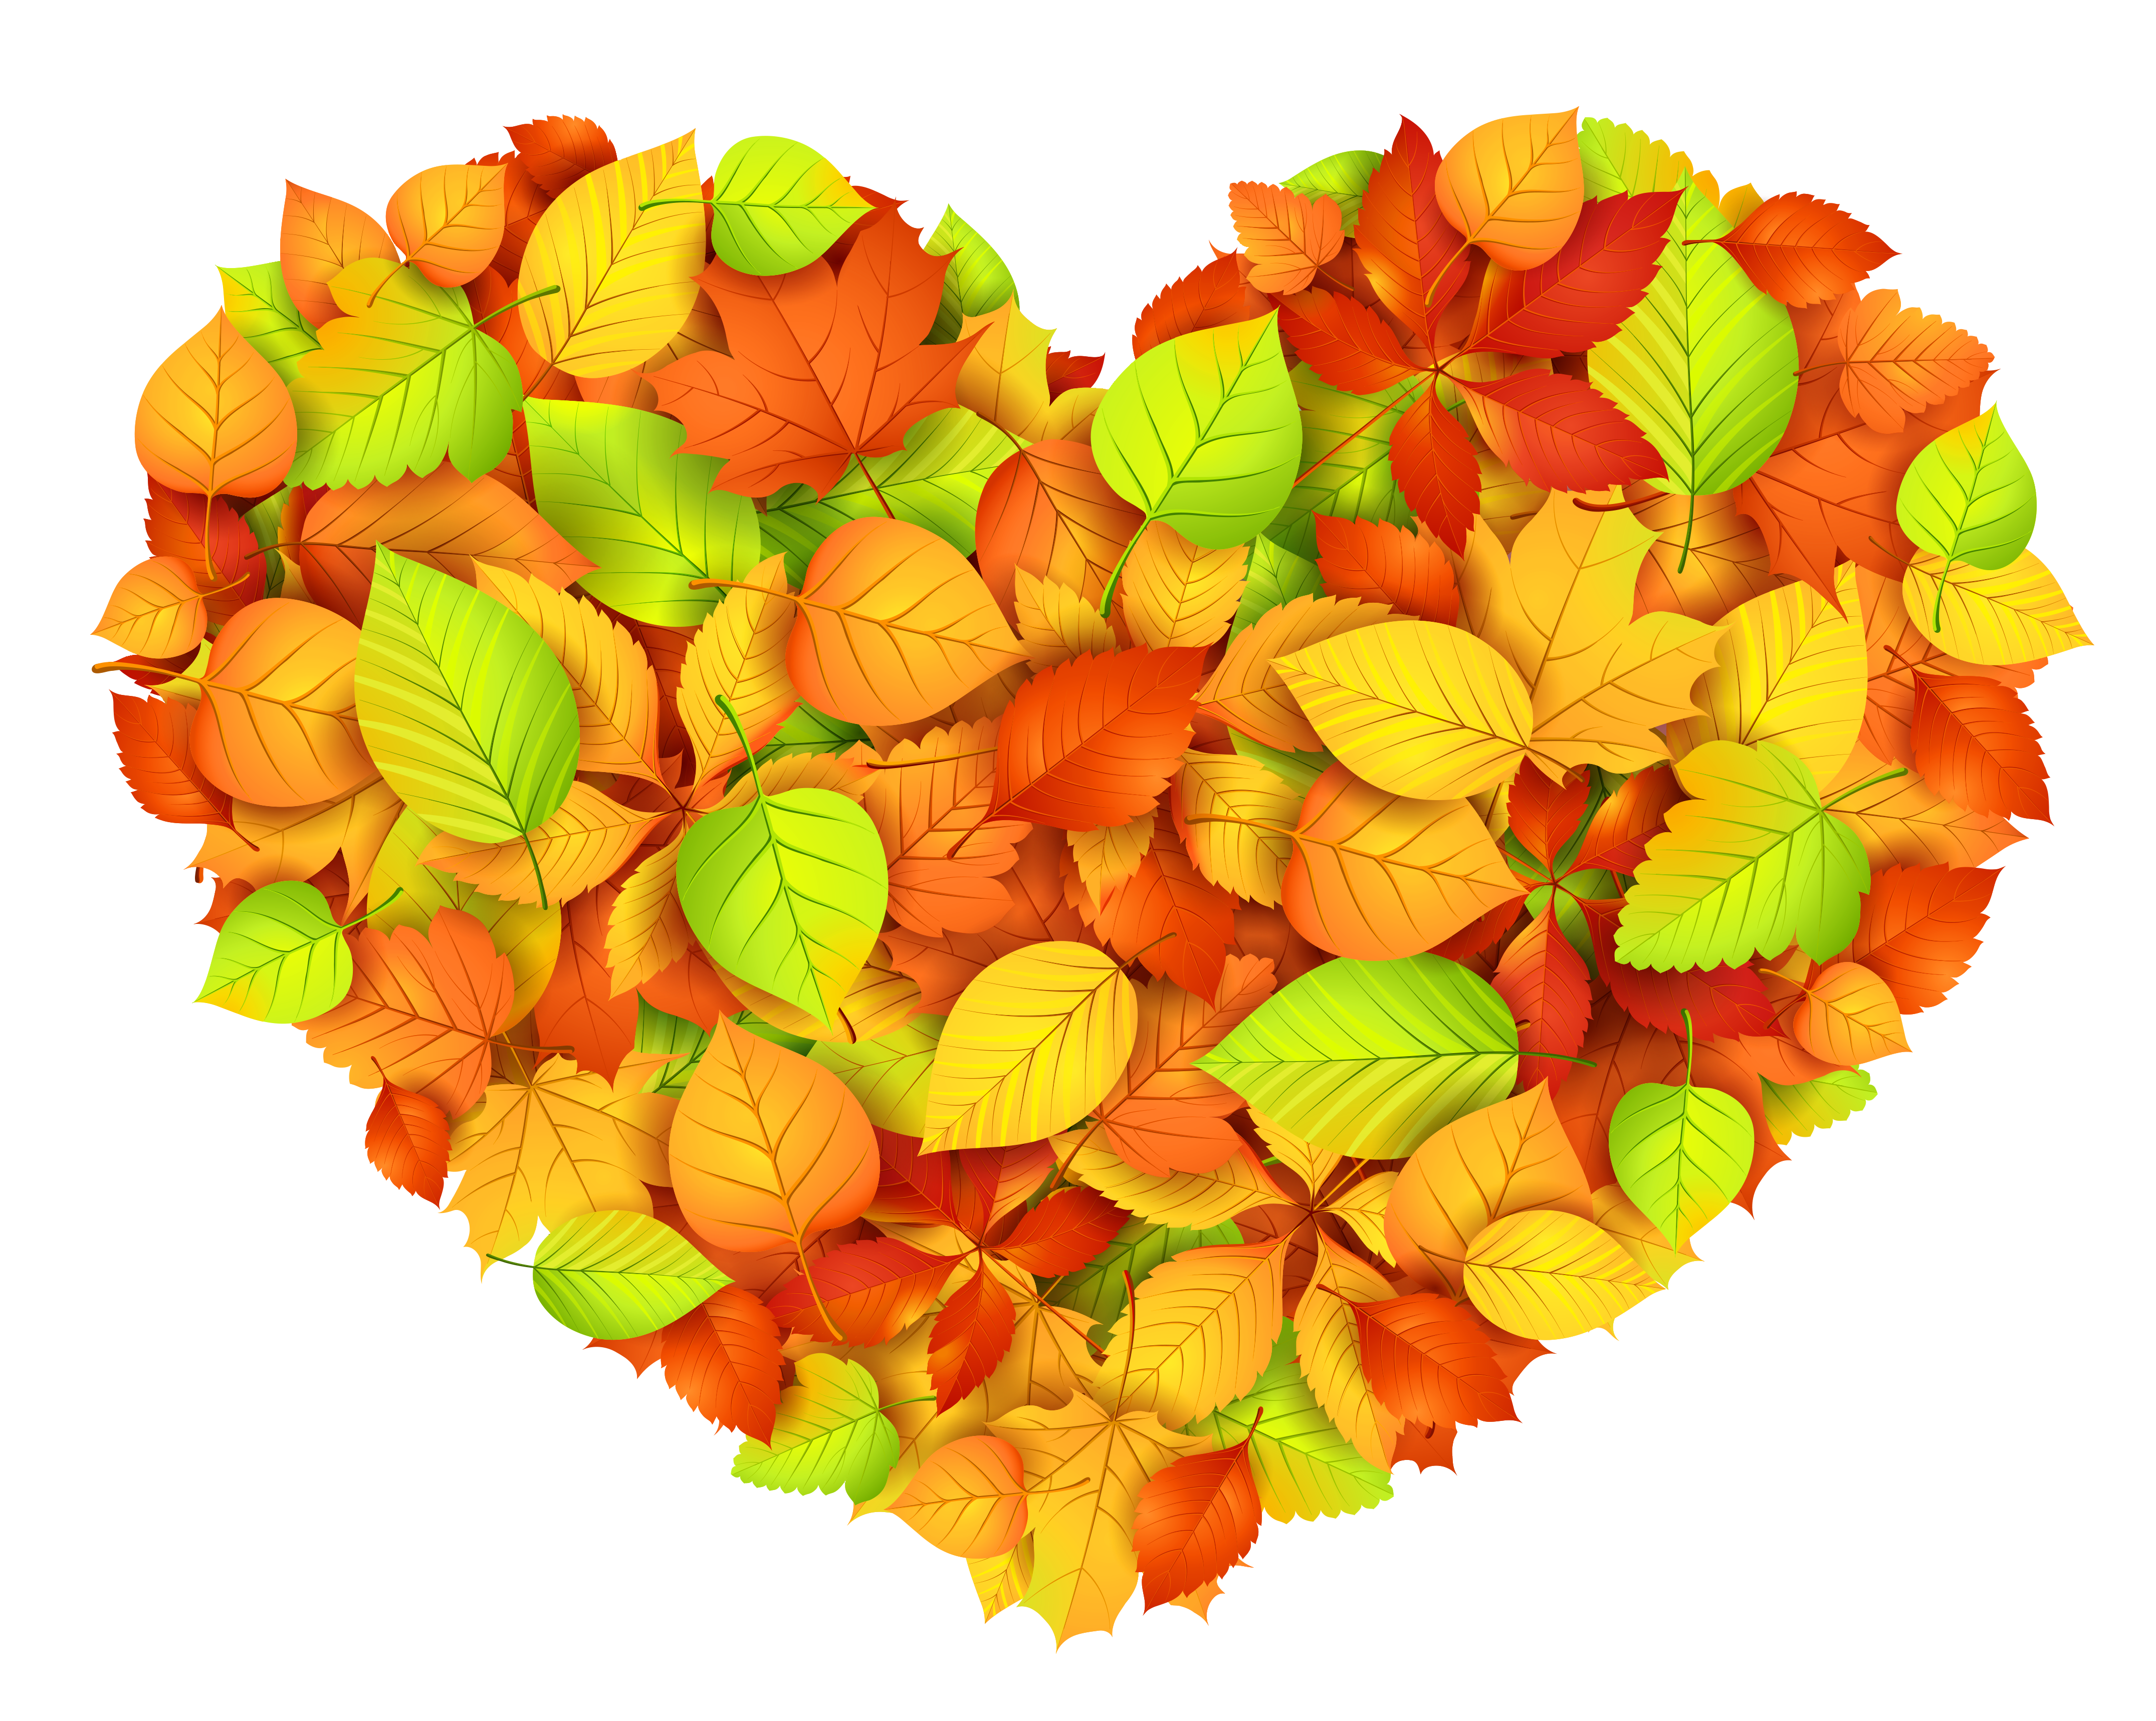 Heart leaf clipart banner freeuse download Heart of Autumn Leaves Decor Transparent Picture | Gallery ... banner freeuse download